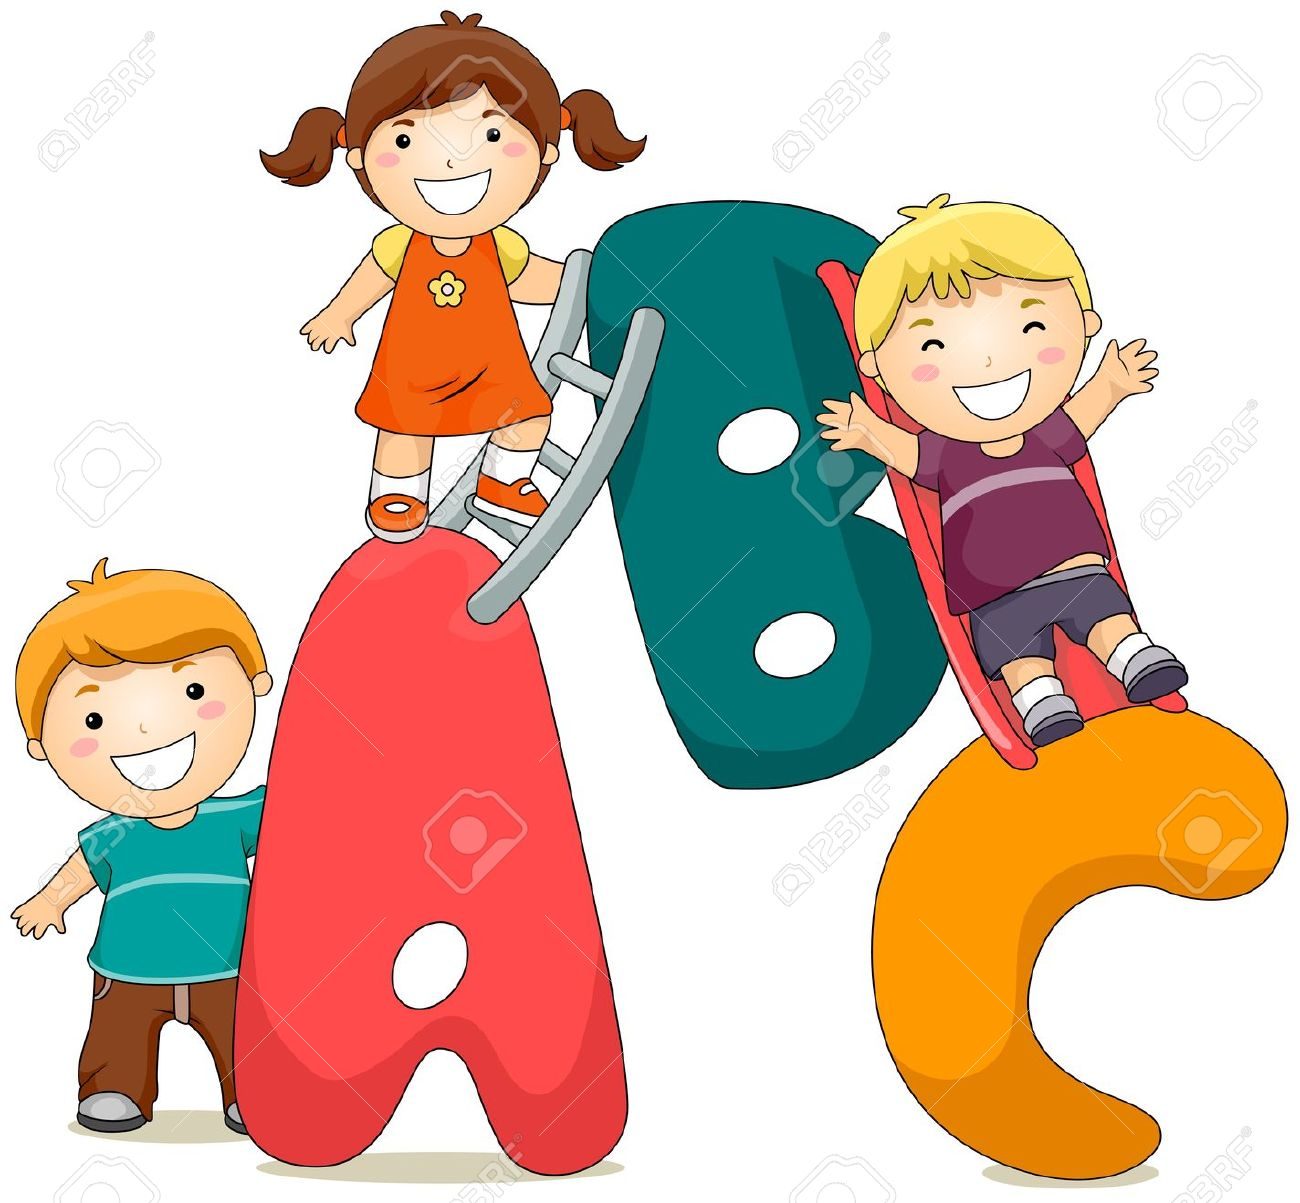 Abc kids clipart.